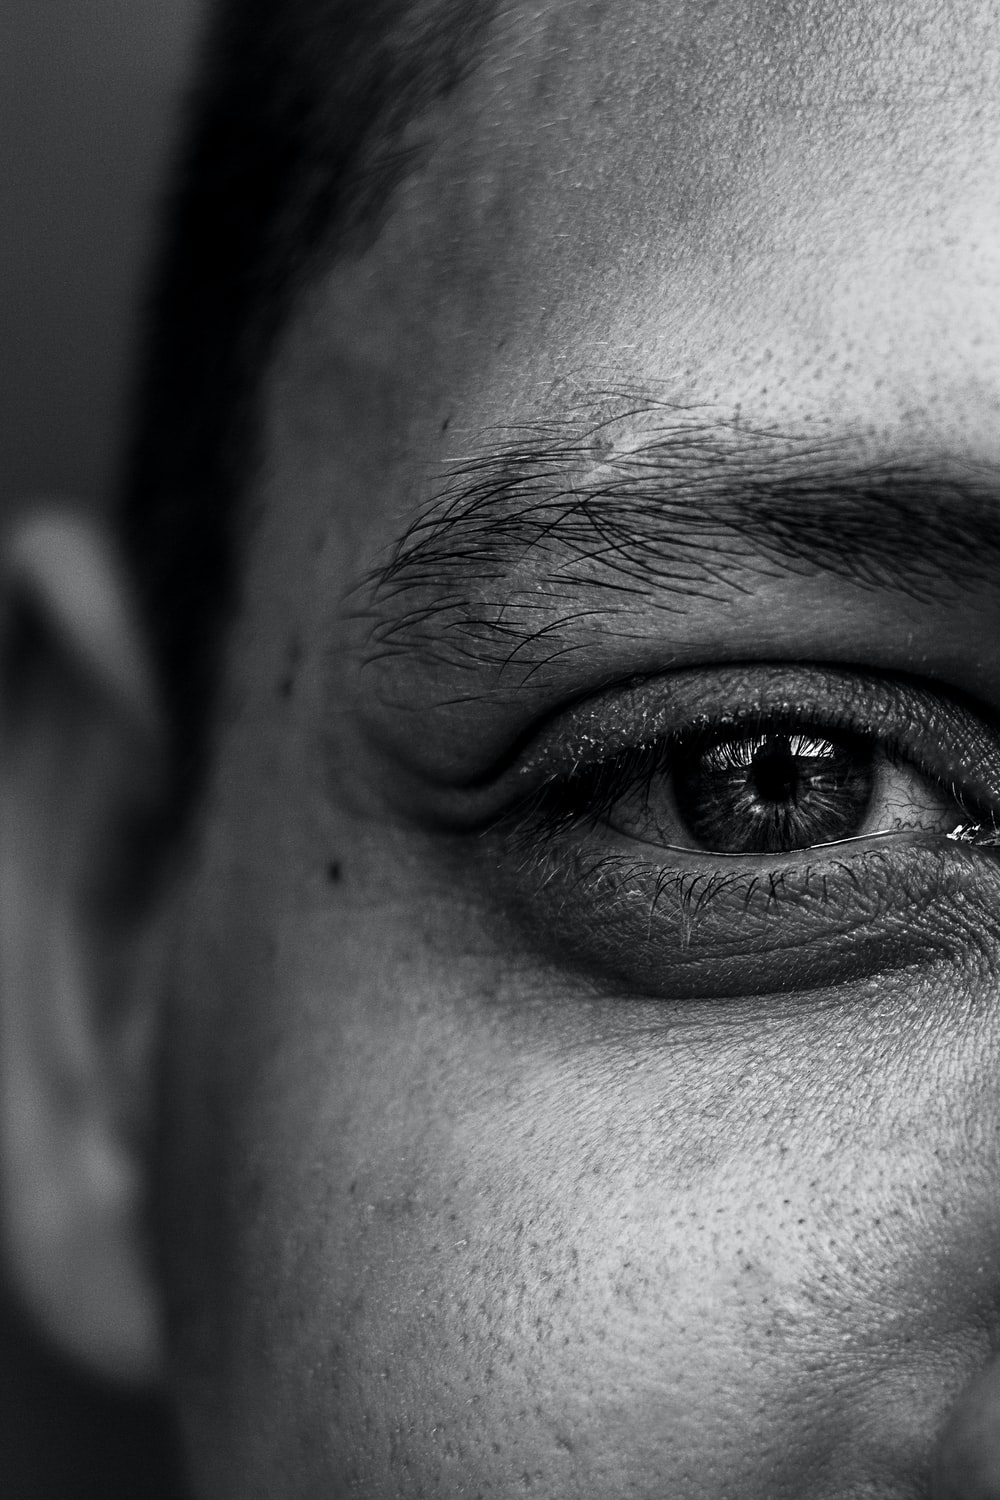 grayscale person's right eye